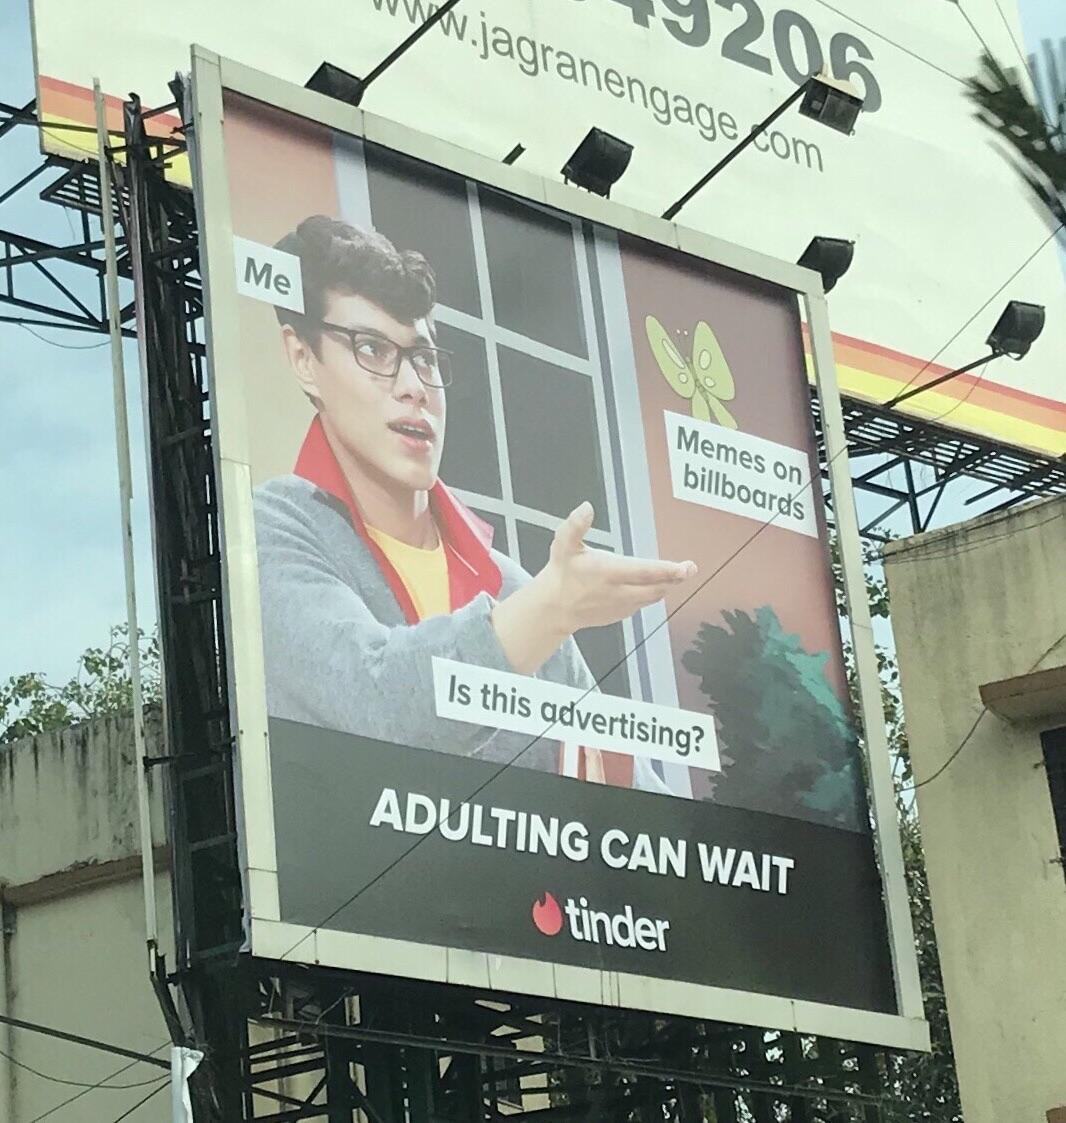 Tinder India's ad in Delhi